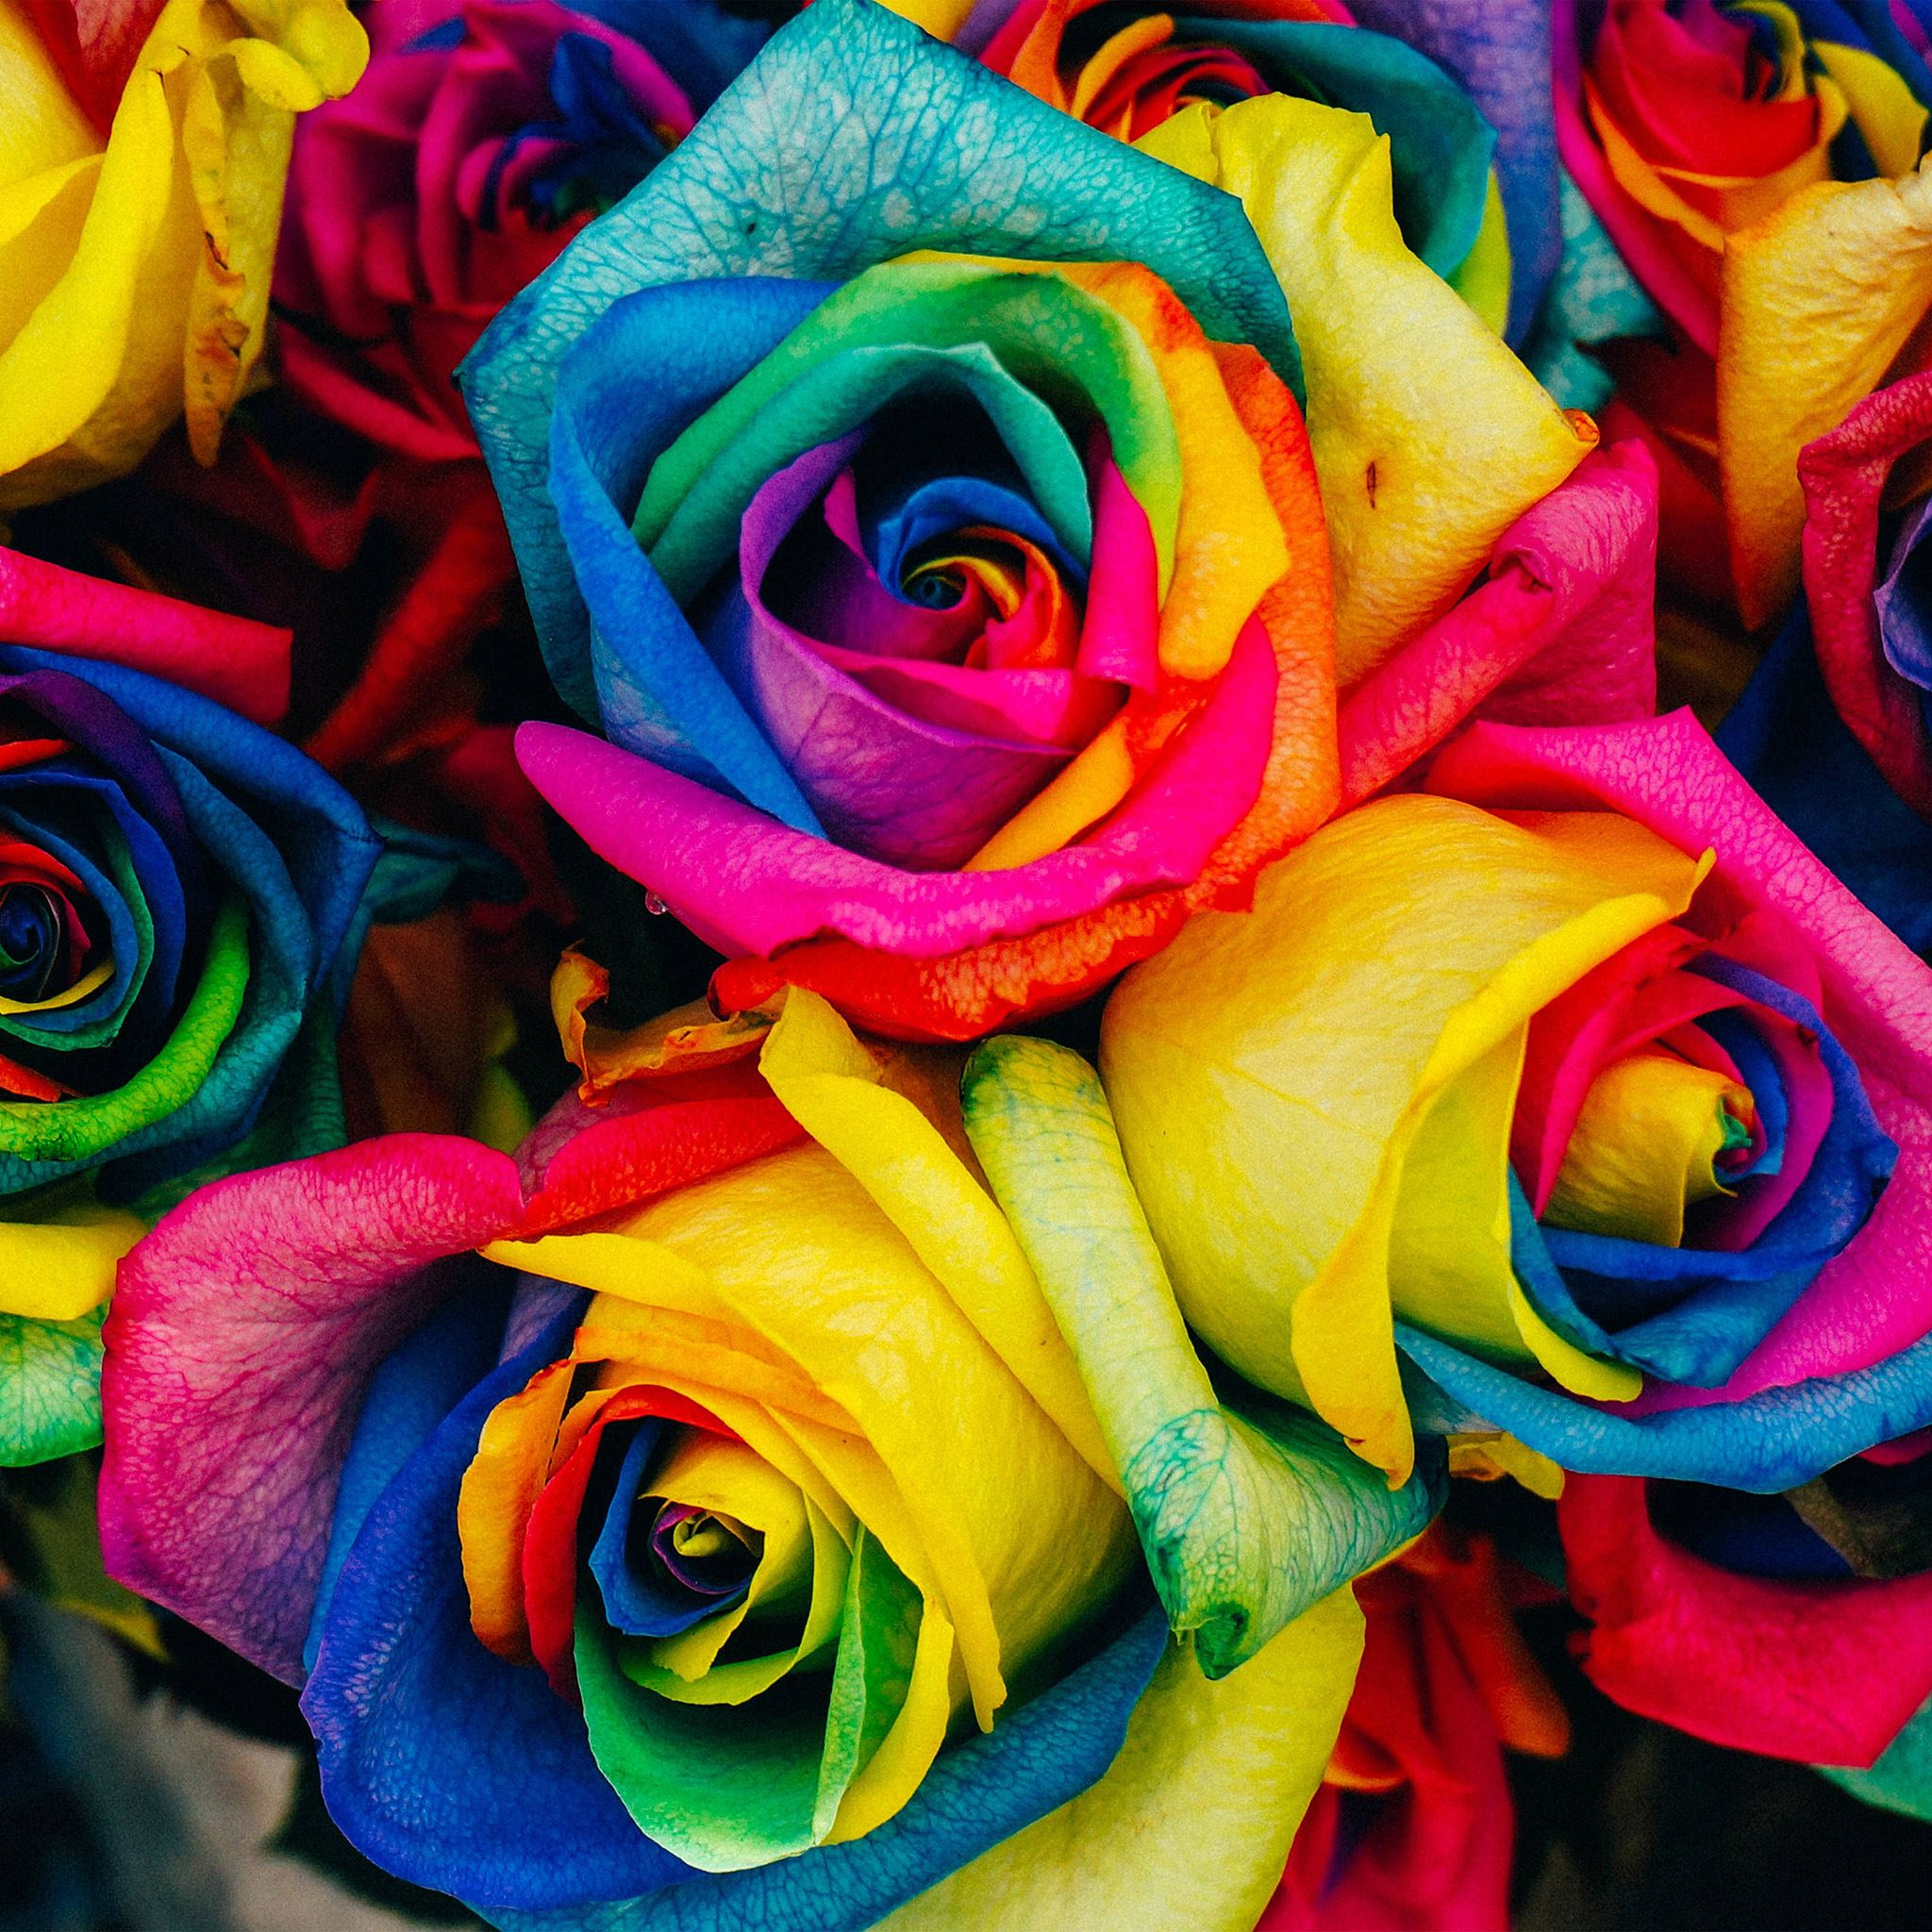 Flower Rose Color Rainbow Art Nature ipad air wallpaper ilikewallpaper